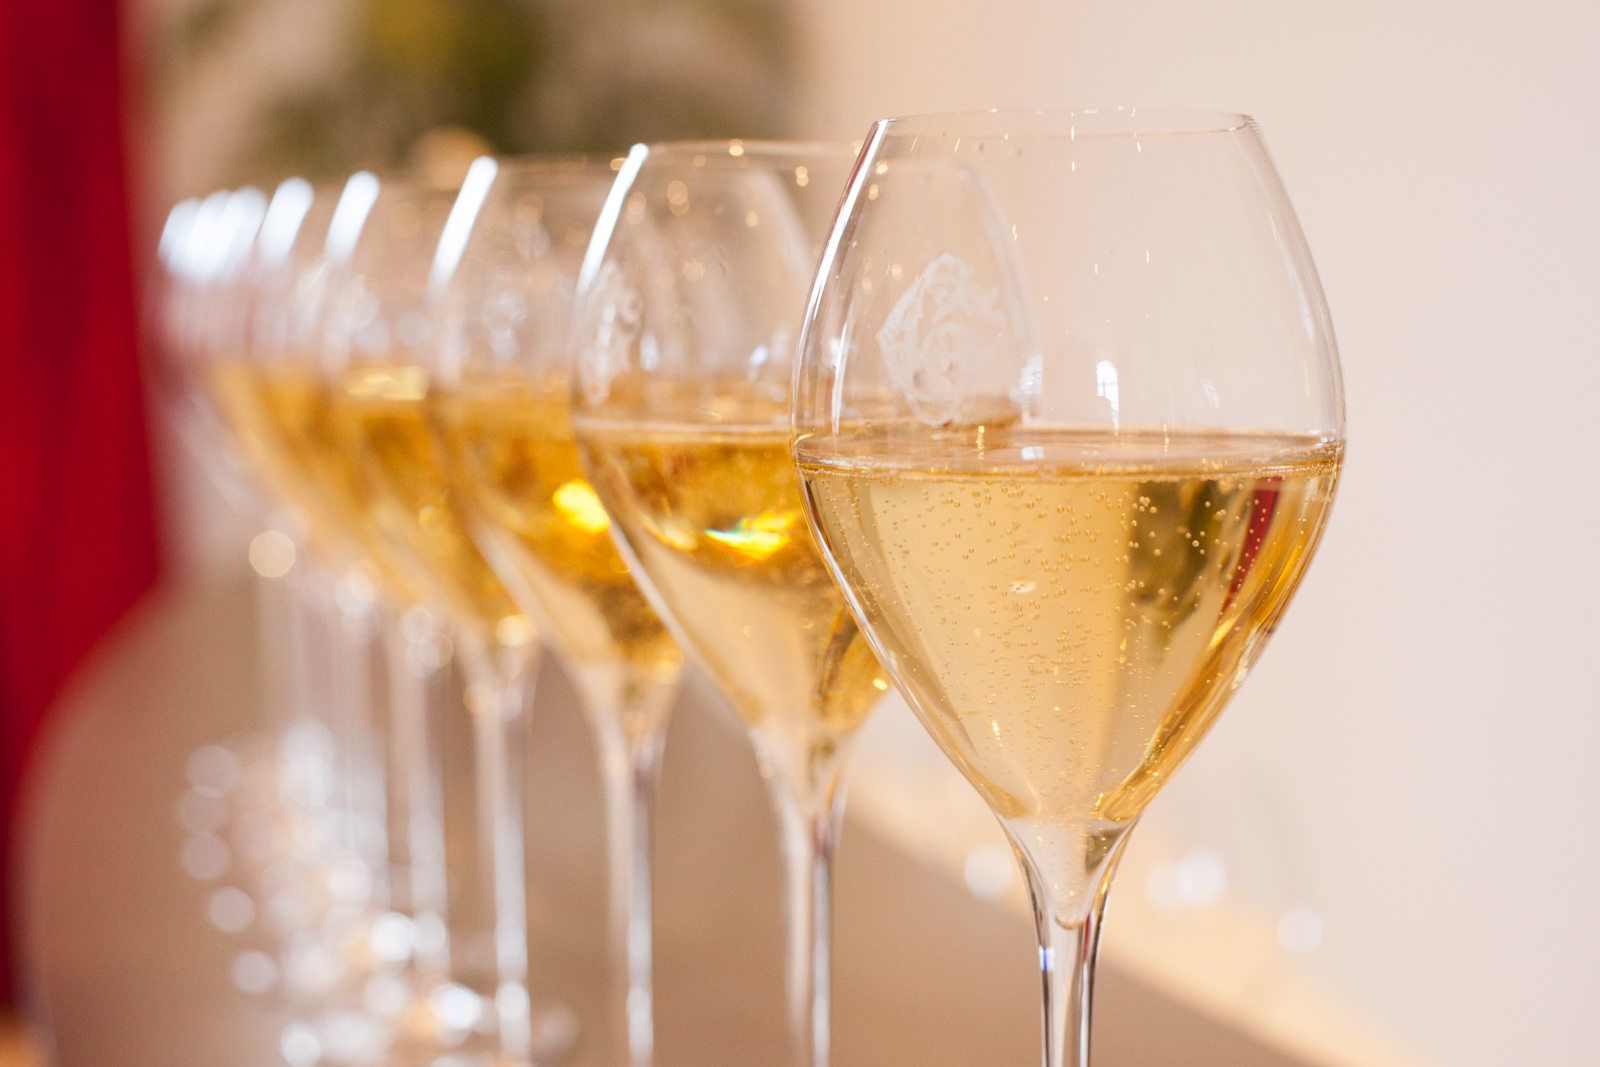 Champagne glasses in a row. Epernay, France. ©Kevin Day / Opening a Bottle